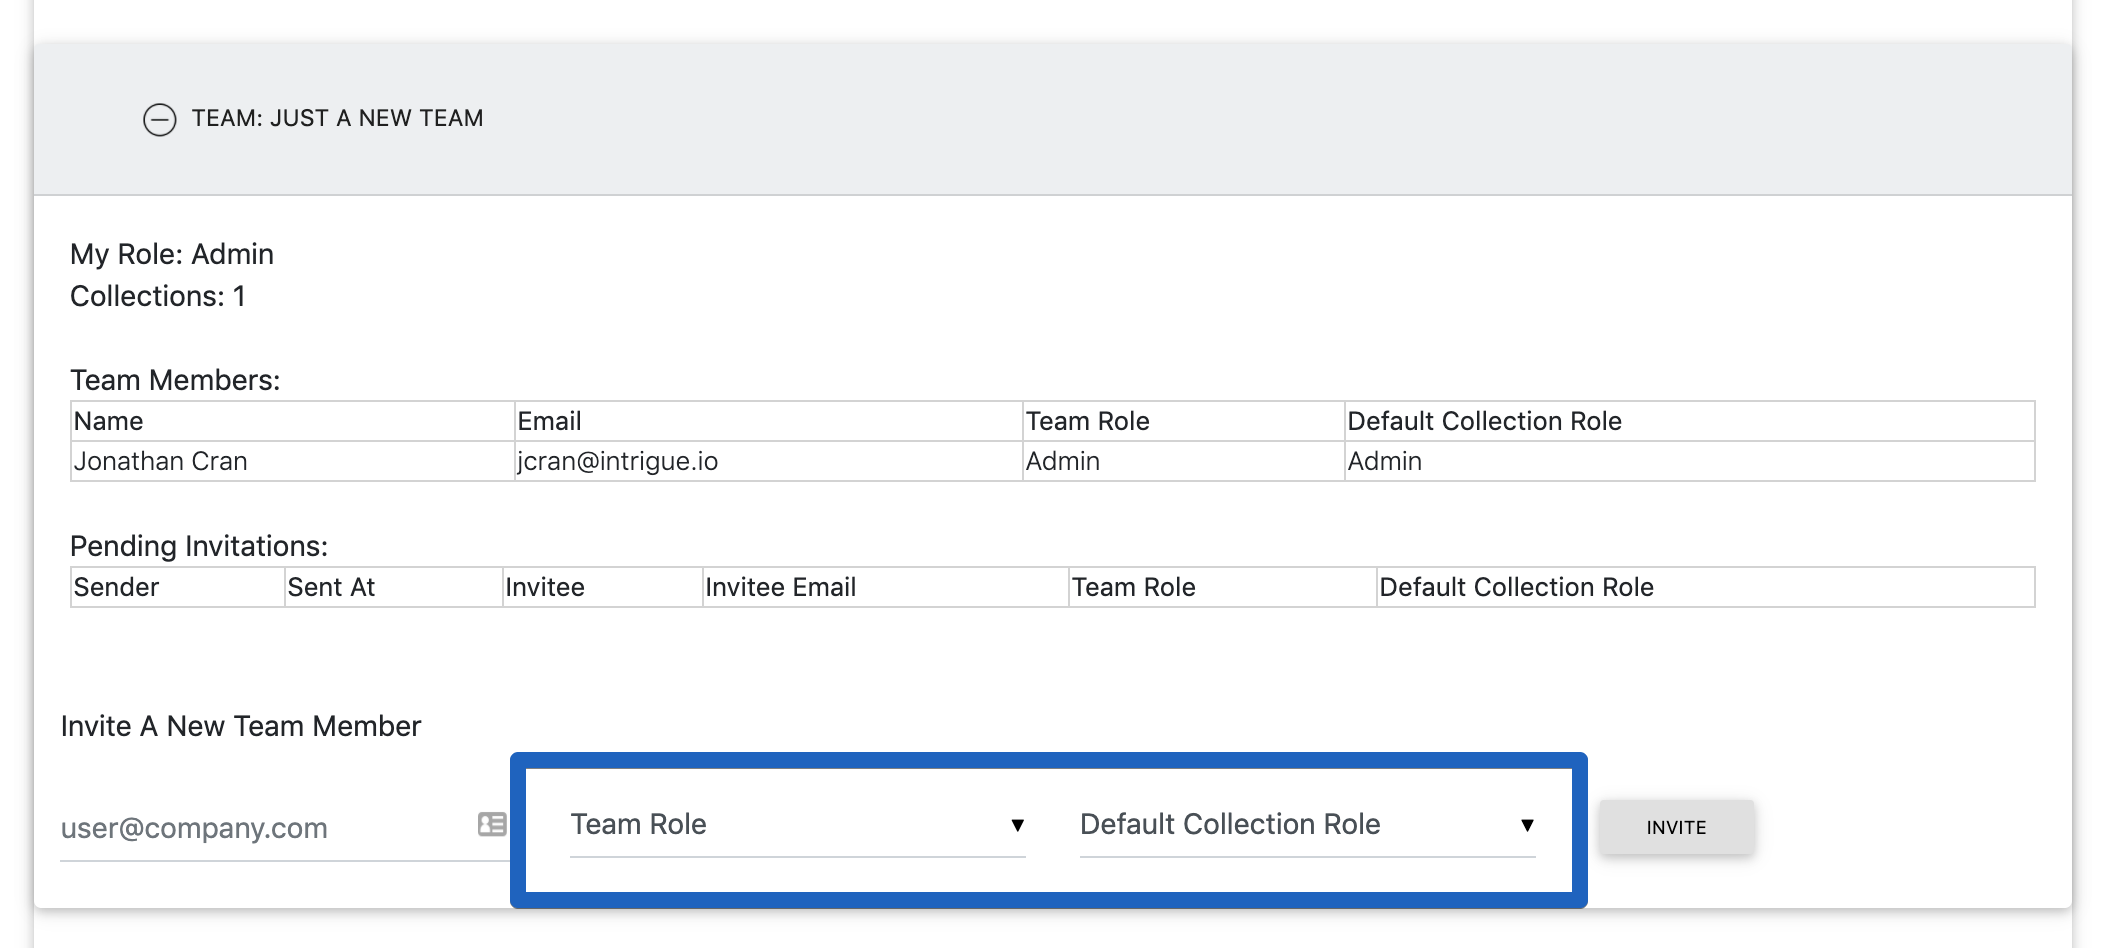 Specify a team role and a default collection role when inviting a new user to the team.